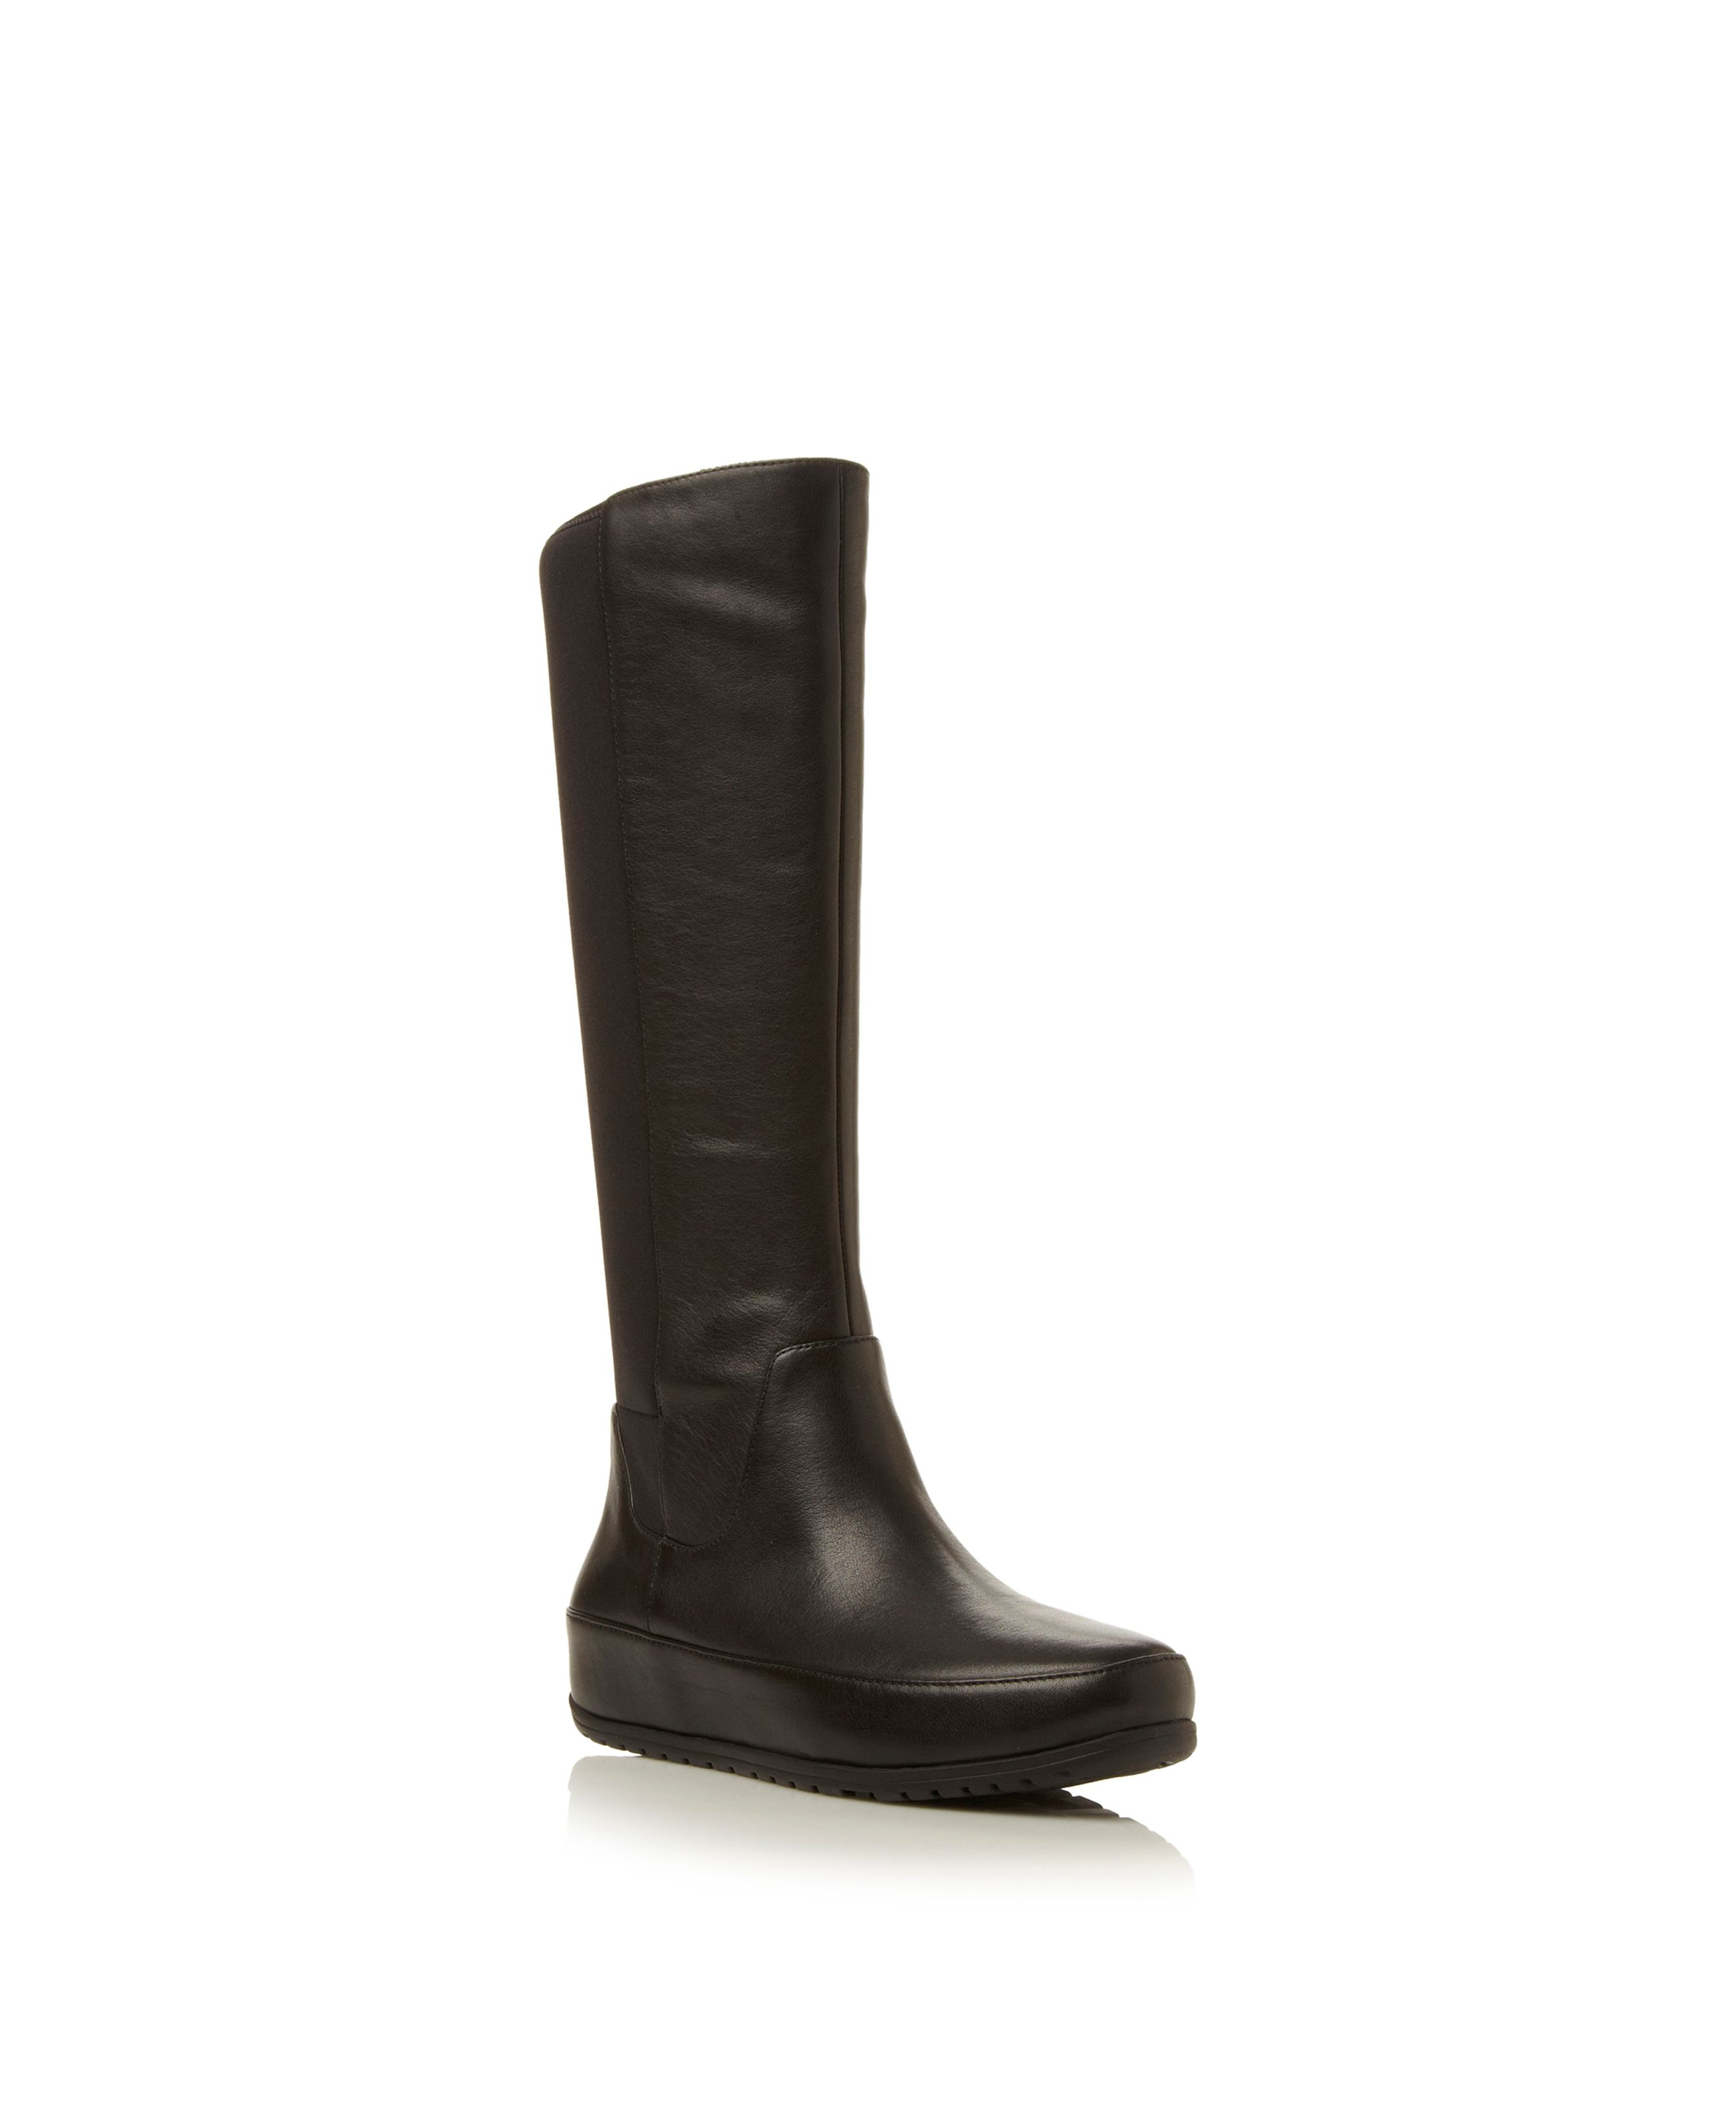 Dune Neoprene stretch boots